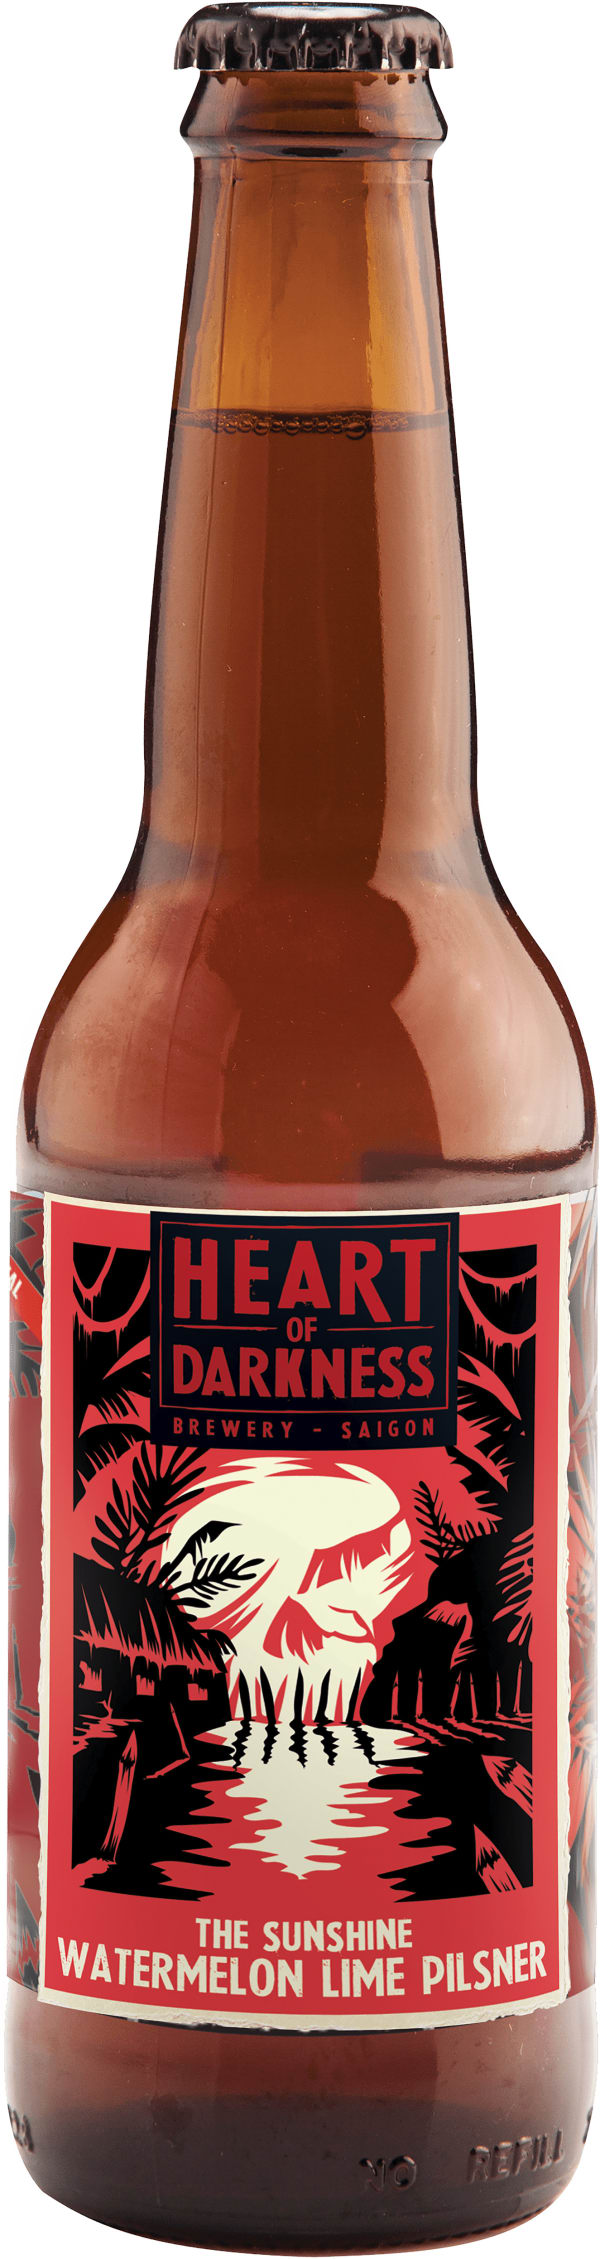 Heart Of Darkness The Sunshine Watermelon Lime Pilsner